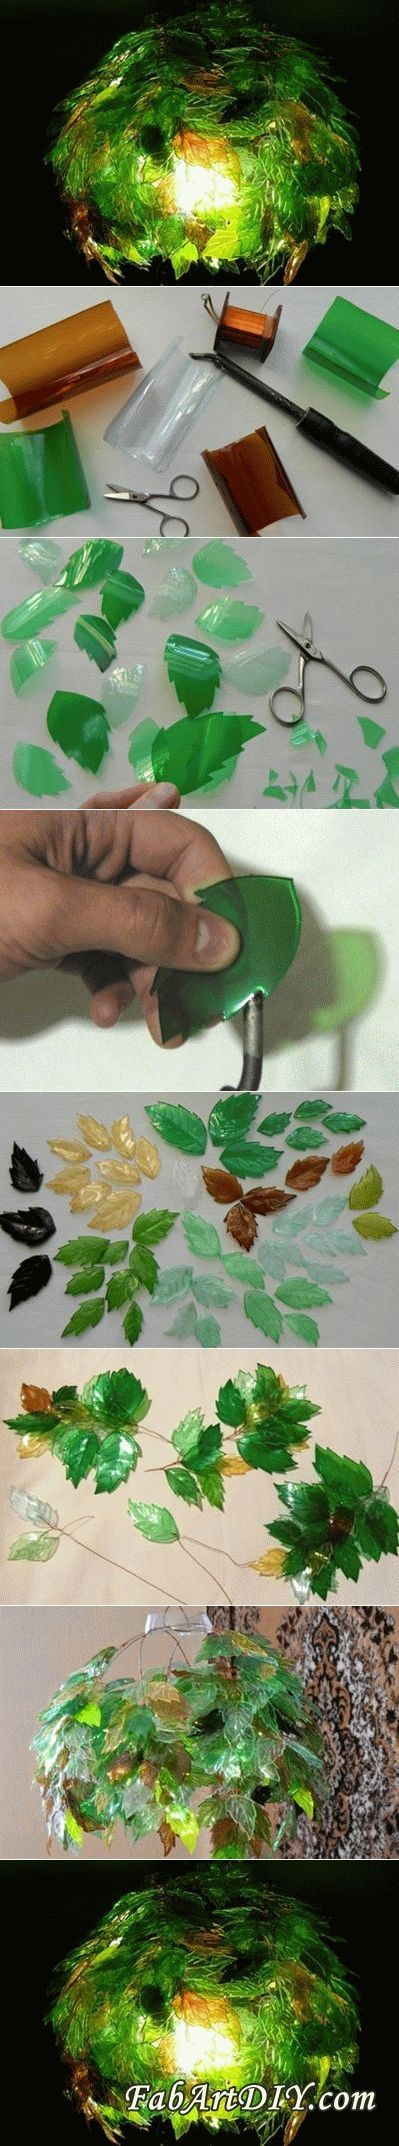 DIY Leaf Lamp Shade from Plastic Bottles. Will likely never make this but it's awesome!